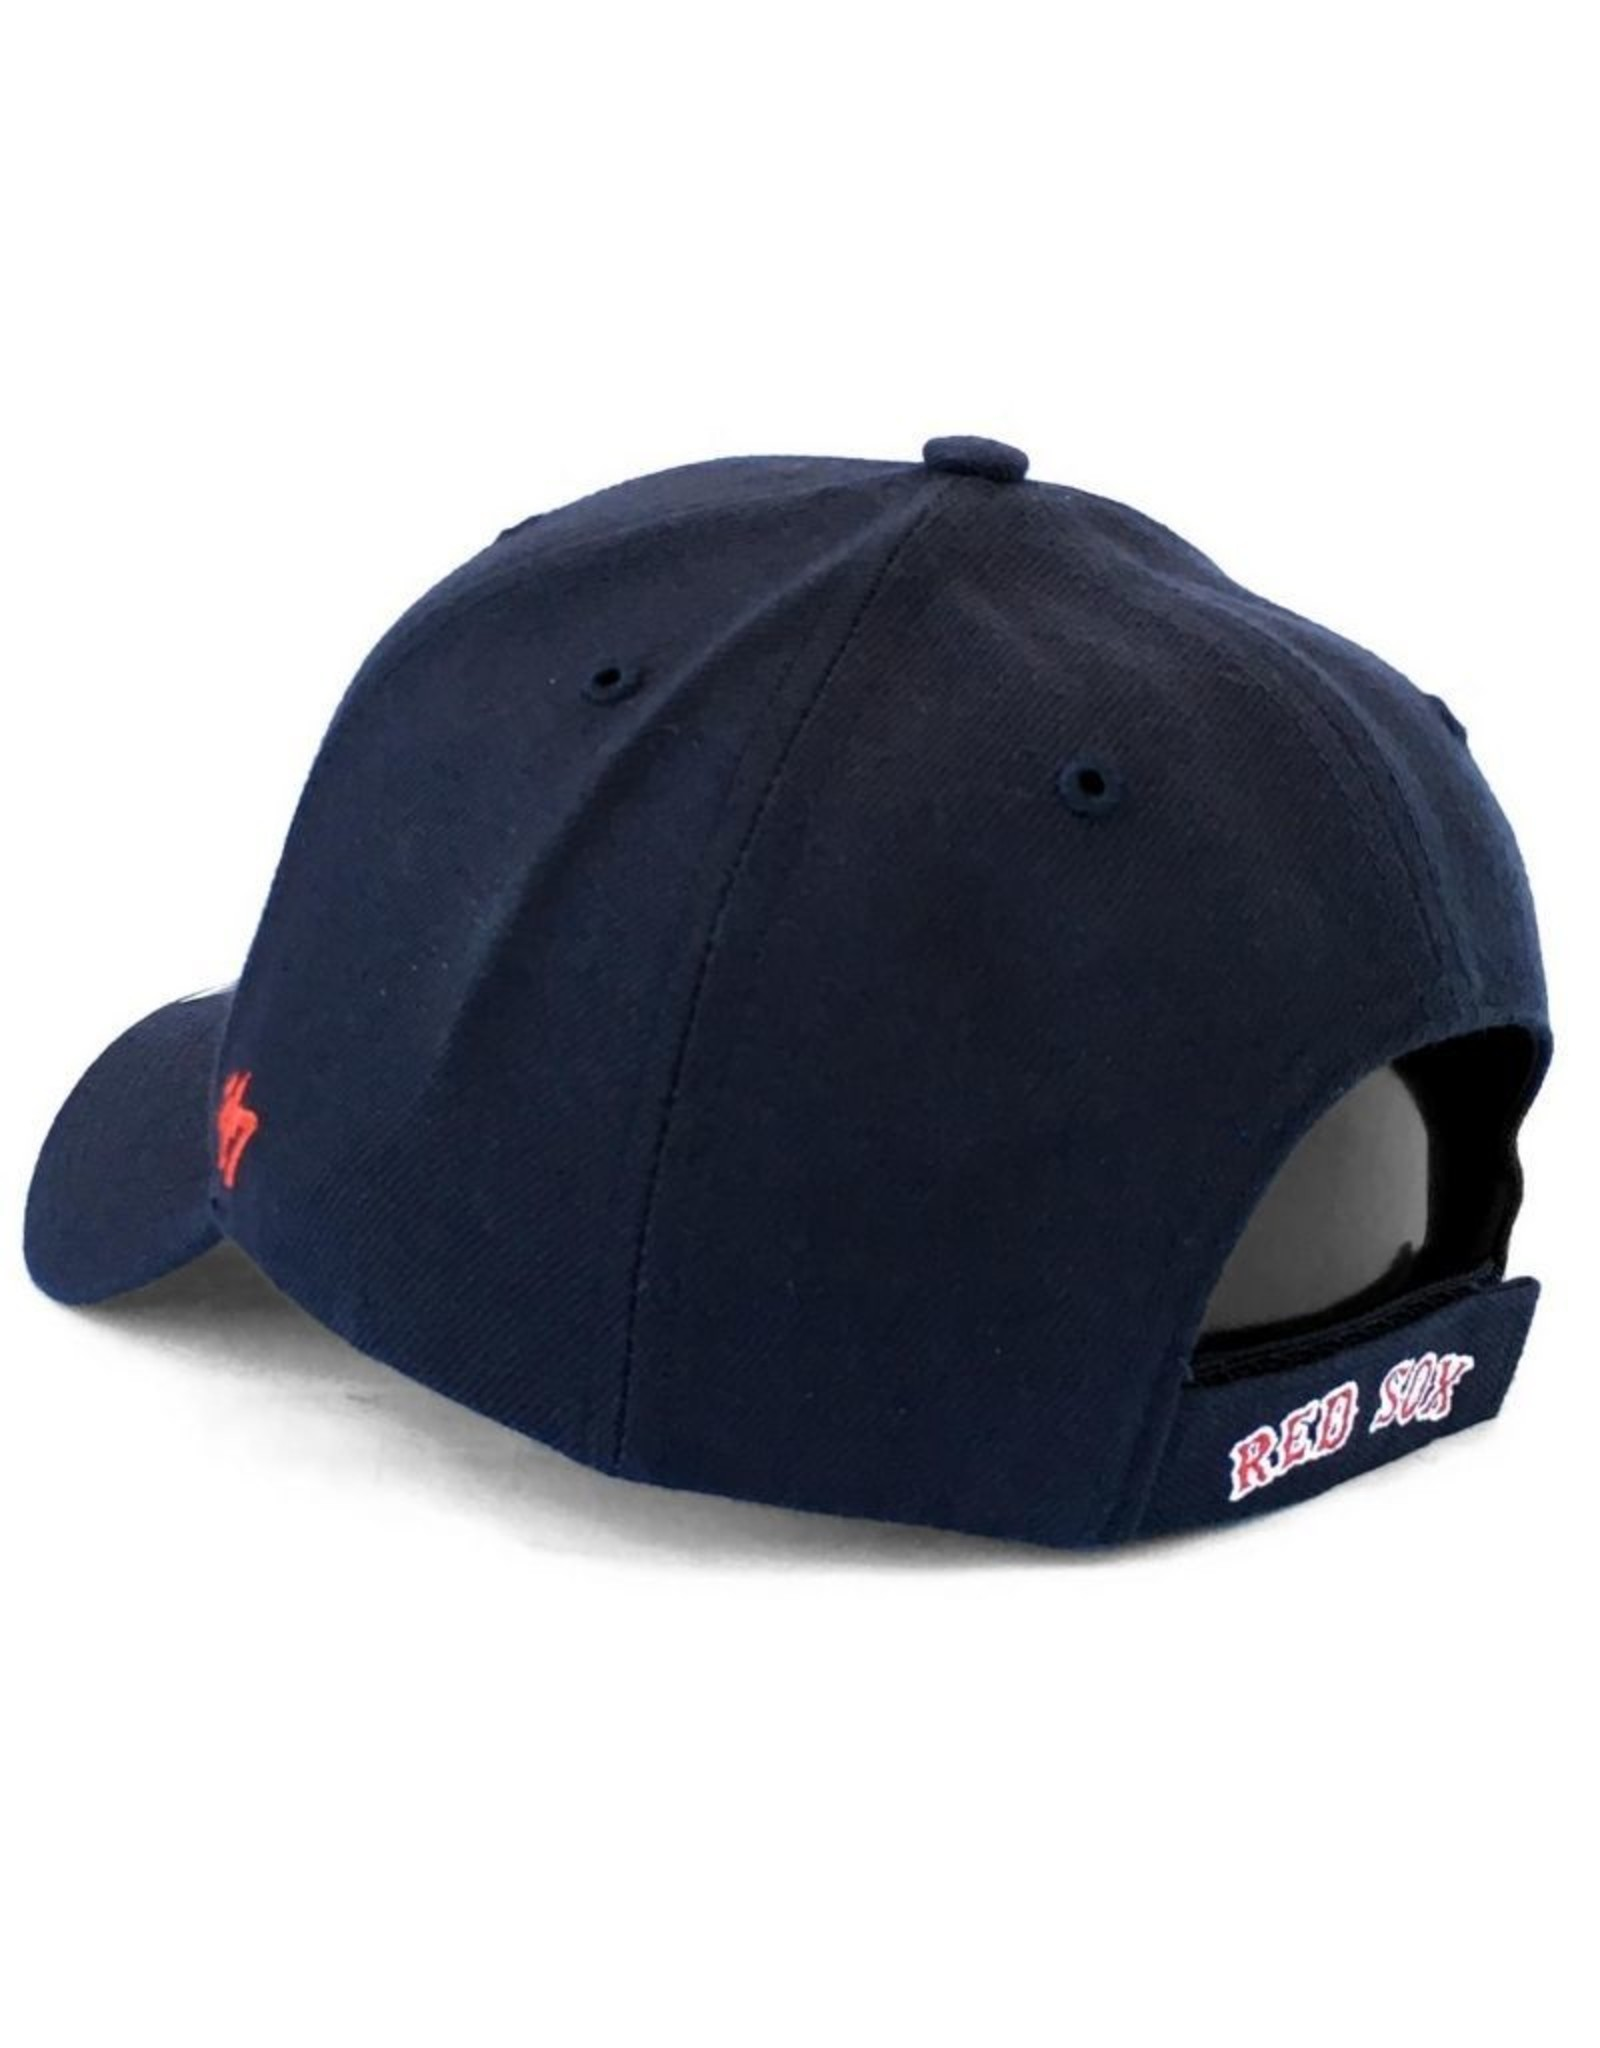 '47 MVP Men's Hat Boston Red Sox Navy Adjustable